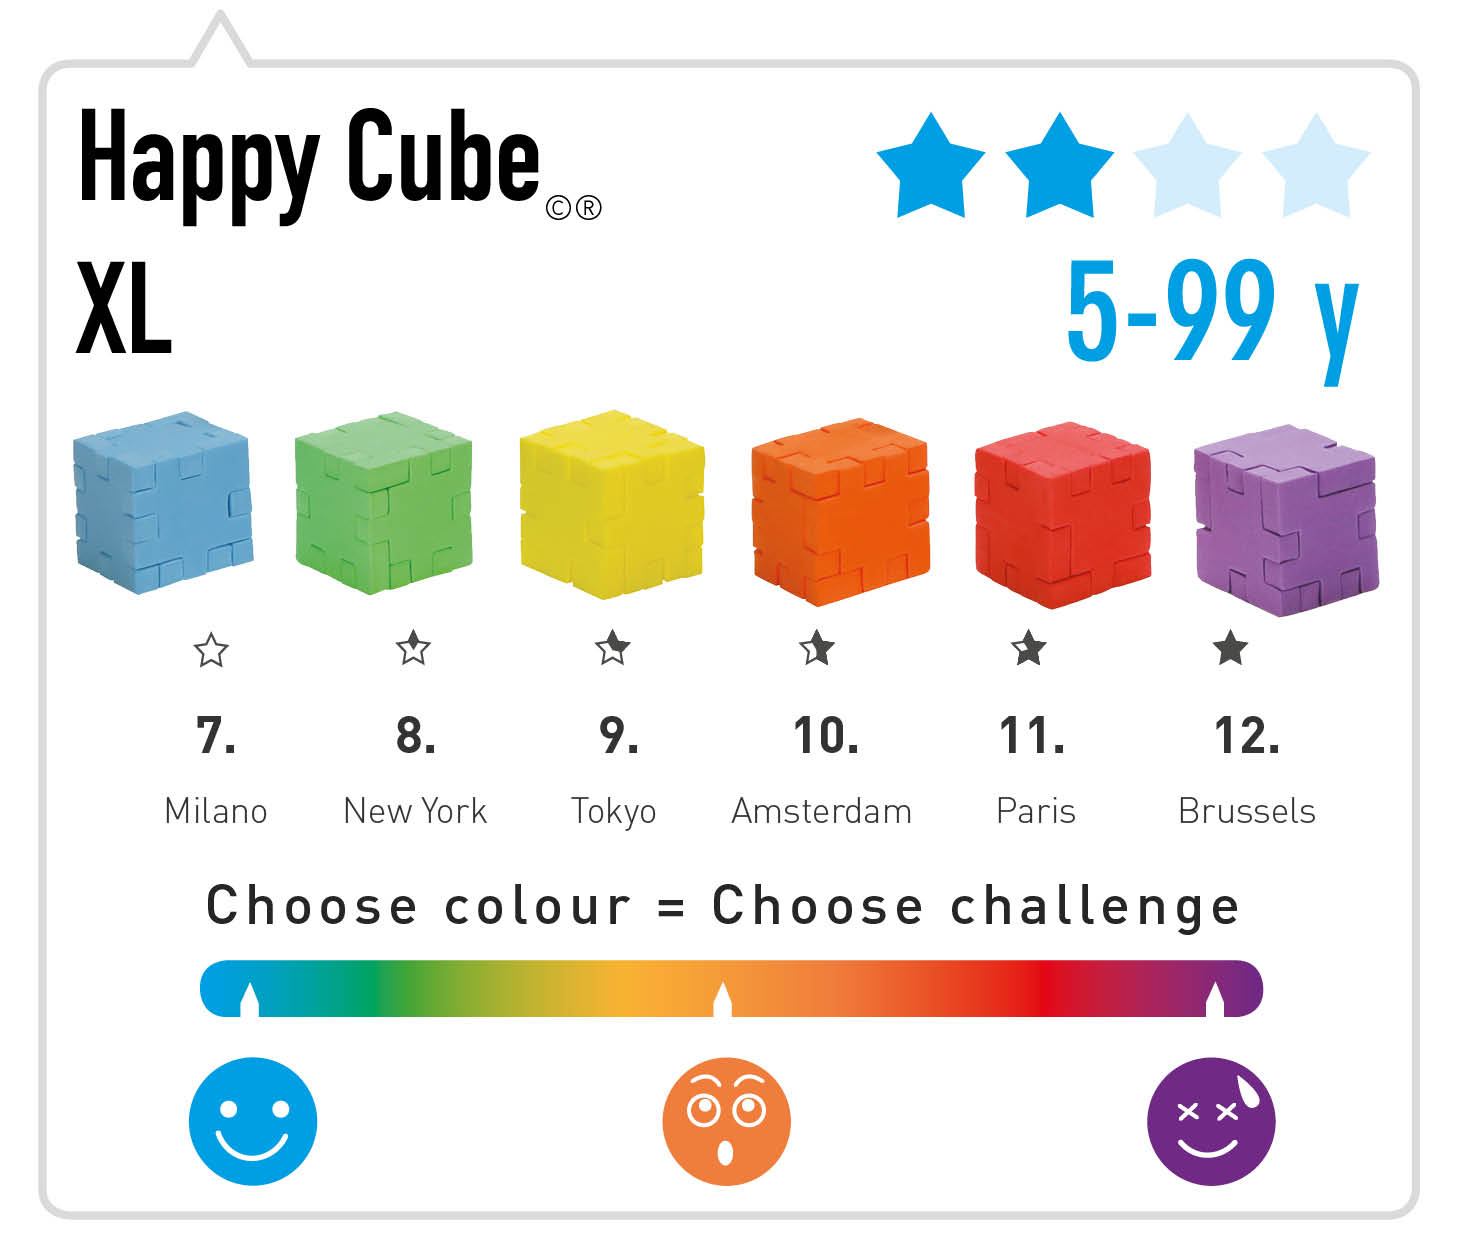 Happy Cube XL Product info